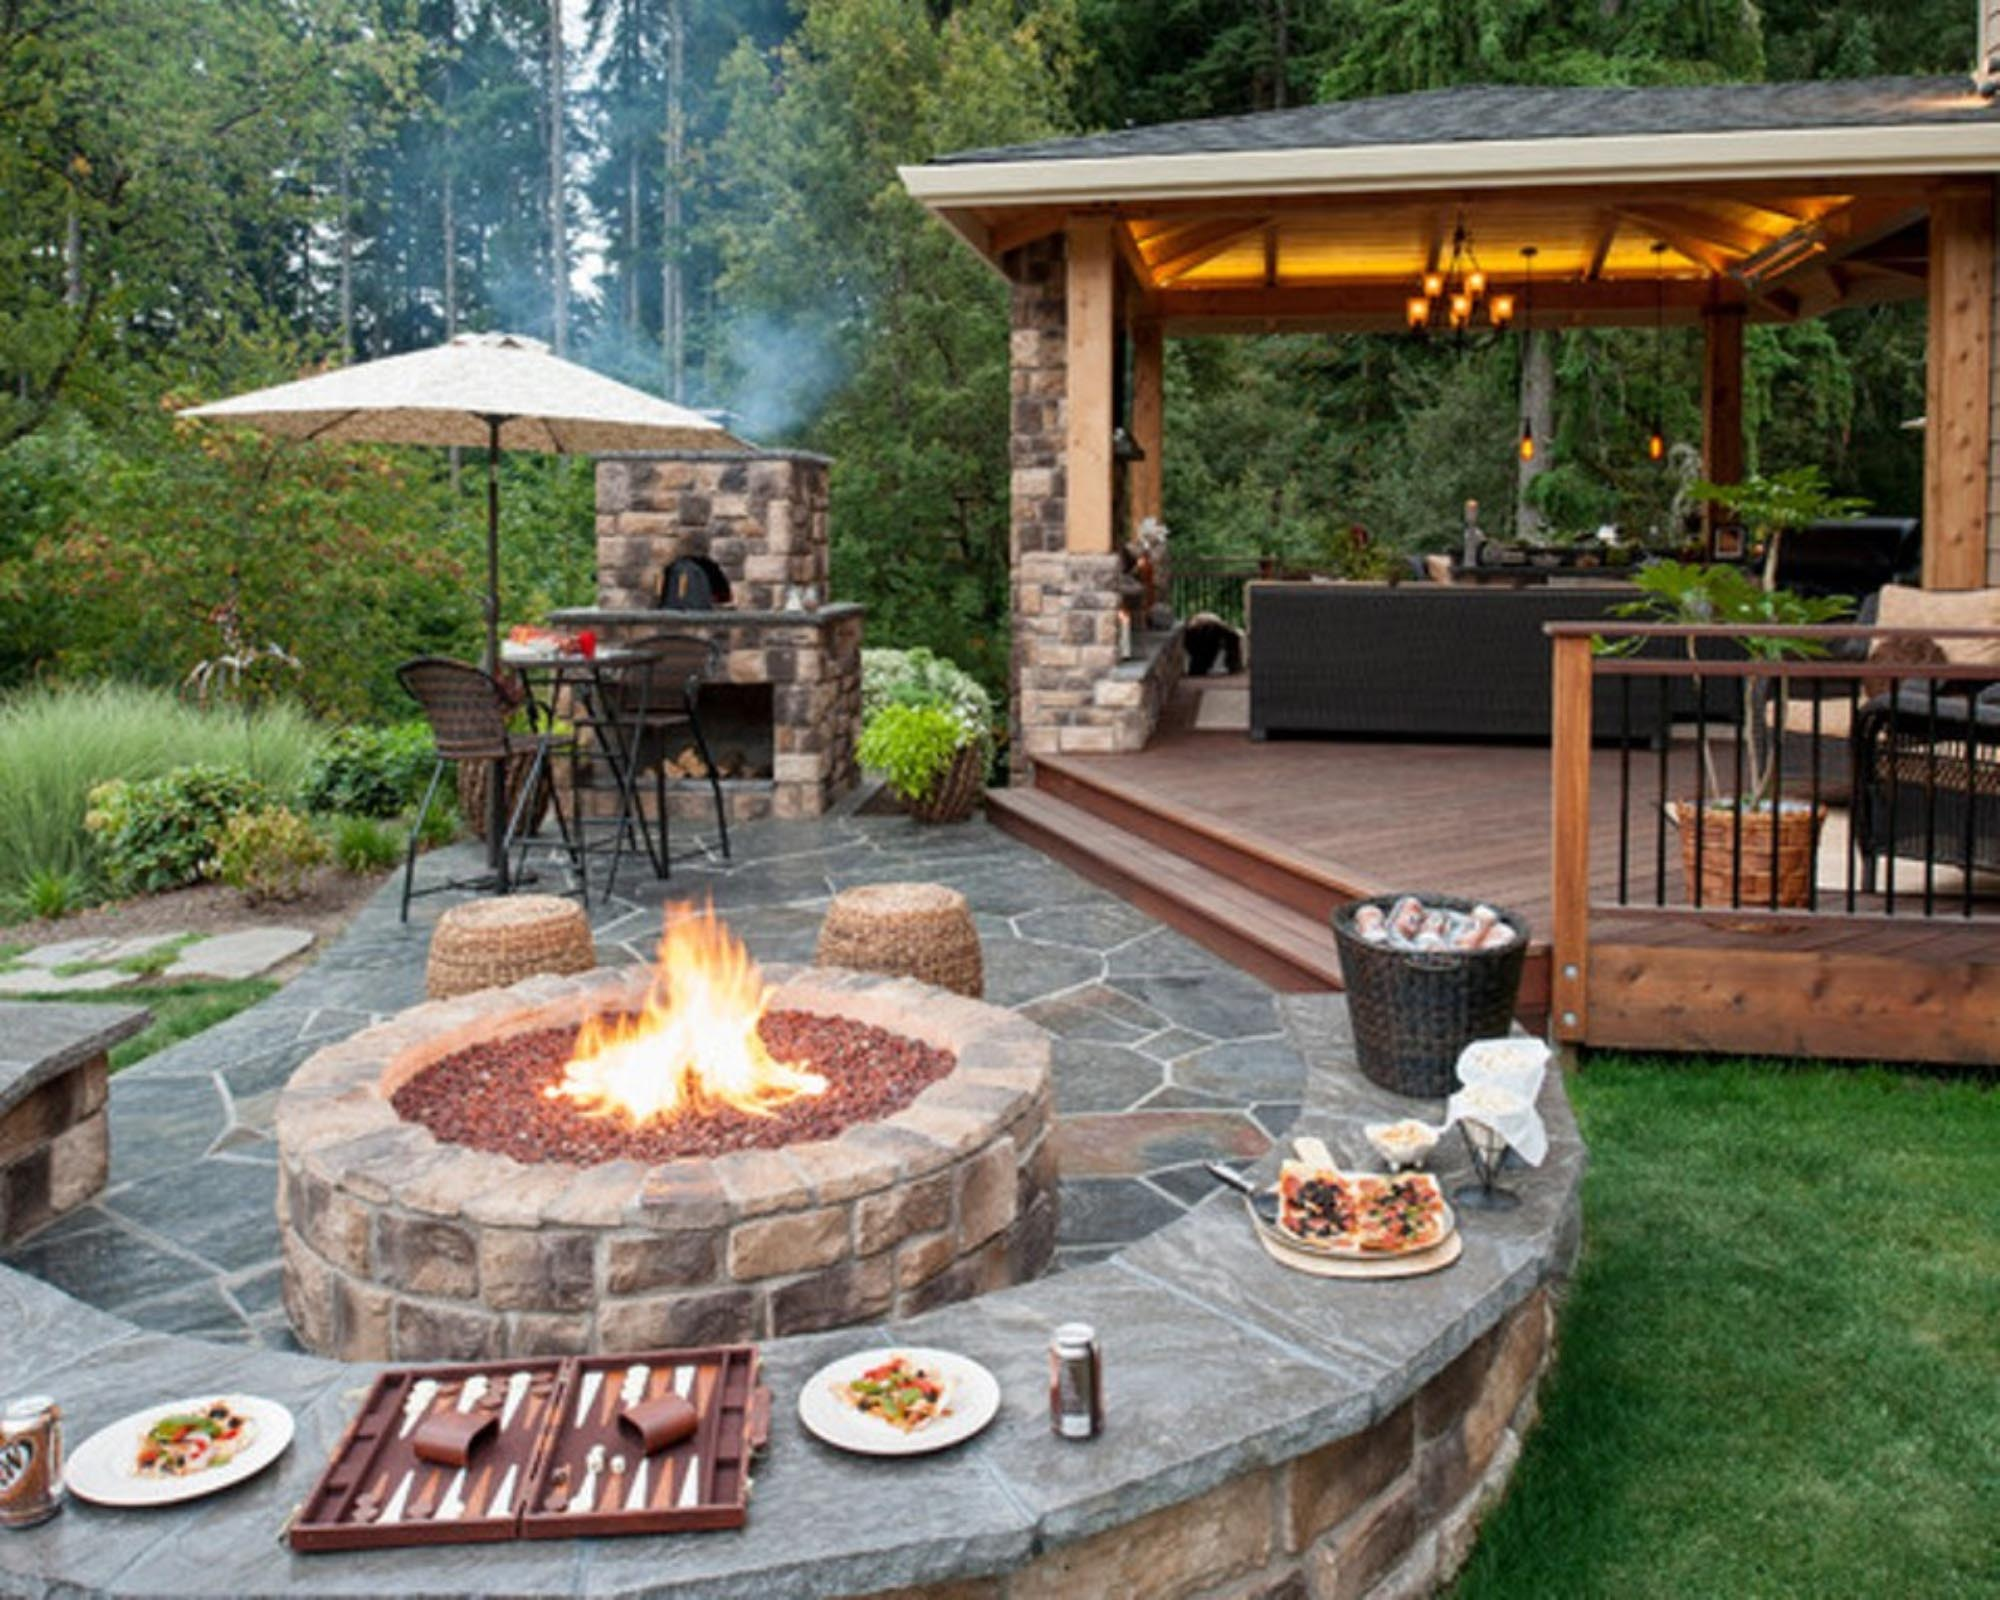 concrete patio designs with fire pit. Outdoor Patio Ideas With Fire Pit Concrete Designs